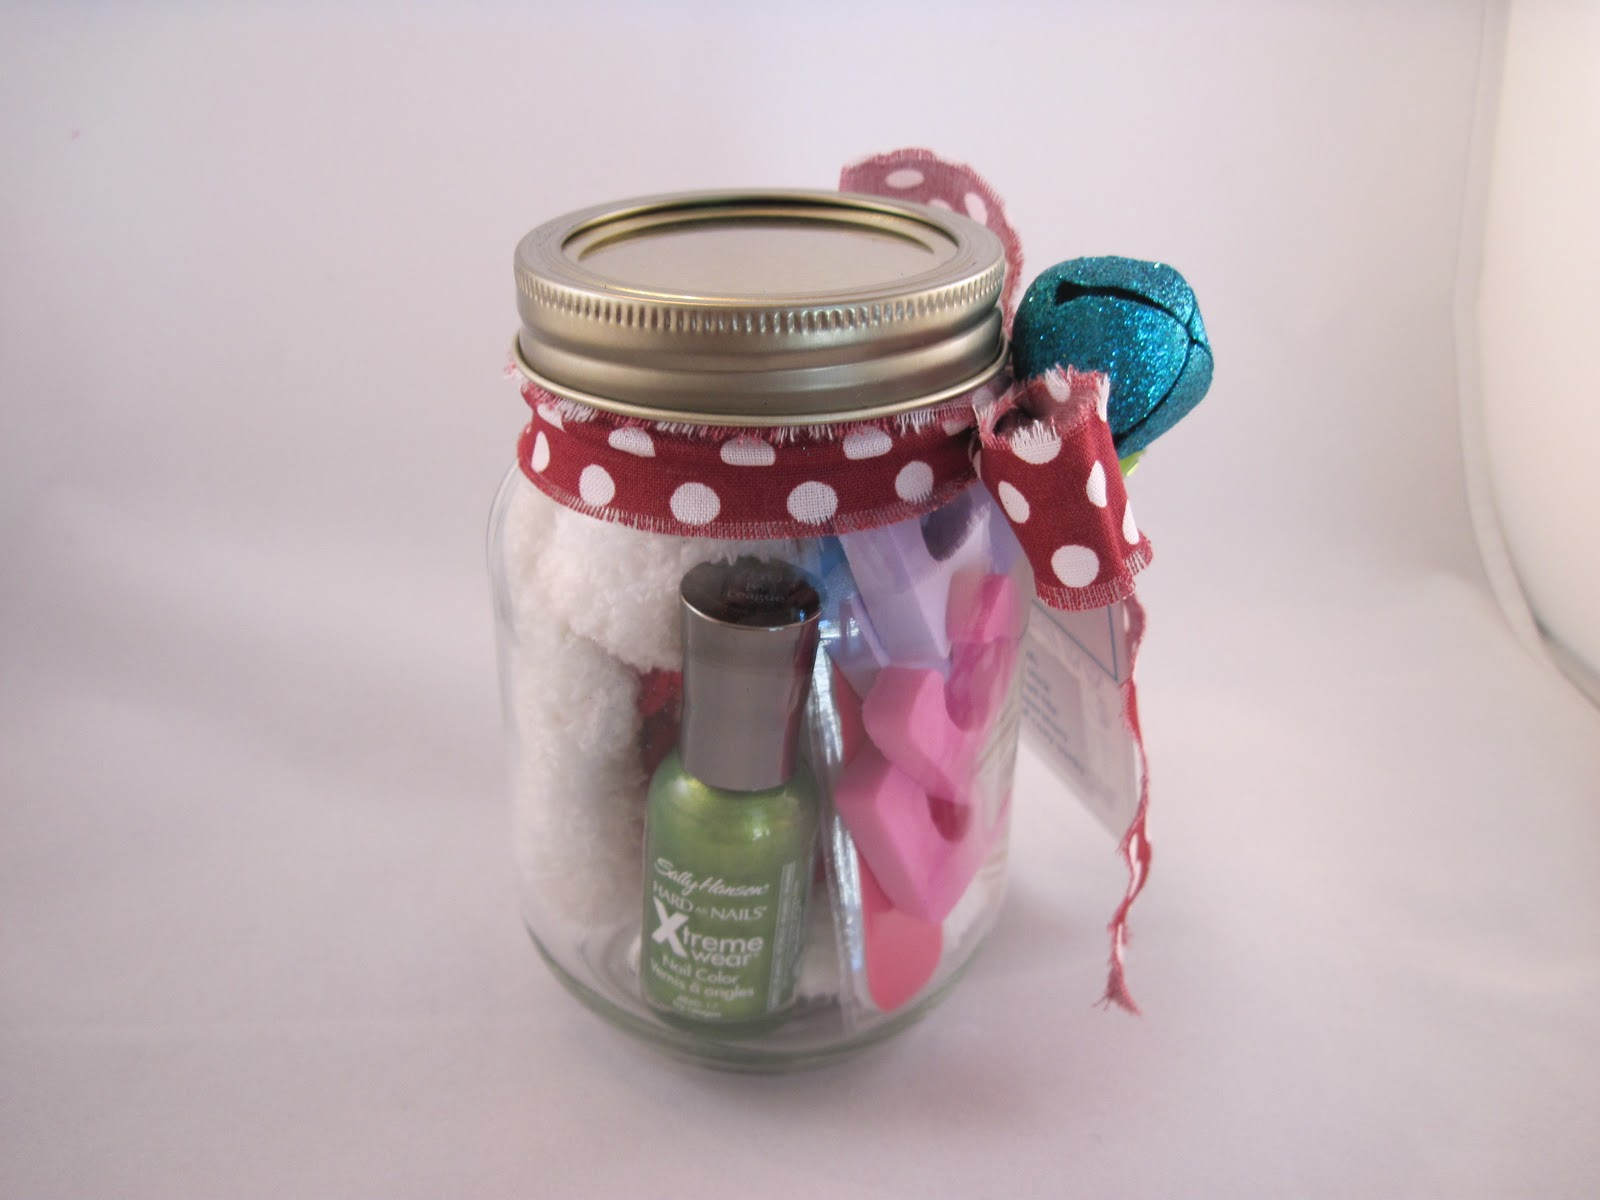 Apr 08, · Any busy baker will be sweet on The Gunny Sack's Loves to Bake Gift in a Jar. Tonia suggests filling a Mason jar with small items, like cupcake liners, cookie cutters, measuring spoons, and cake decorating supplies. Trim with festive washi tape, and deliver your homemade gift with a Phone: ()